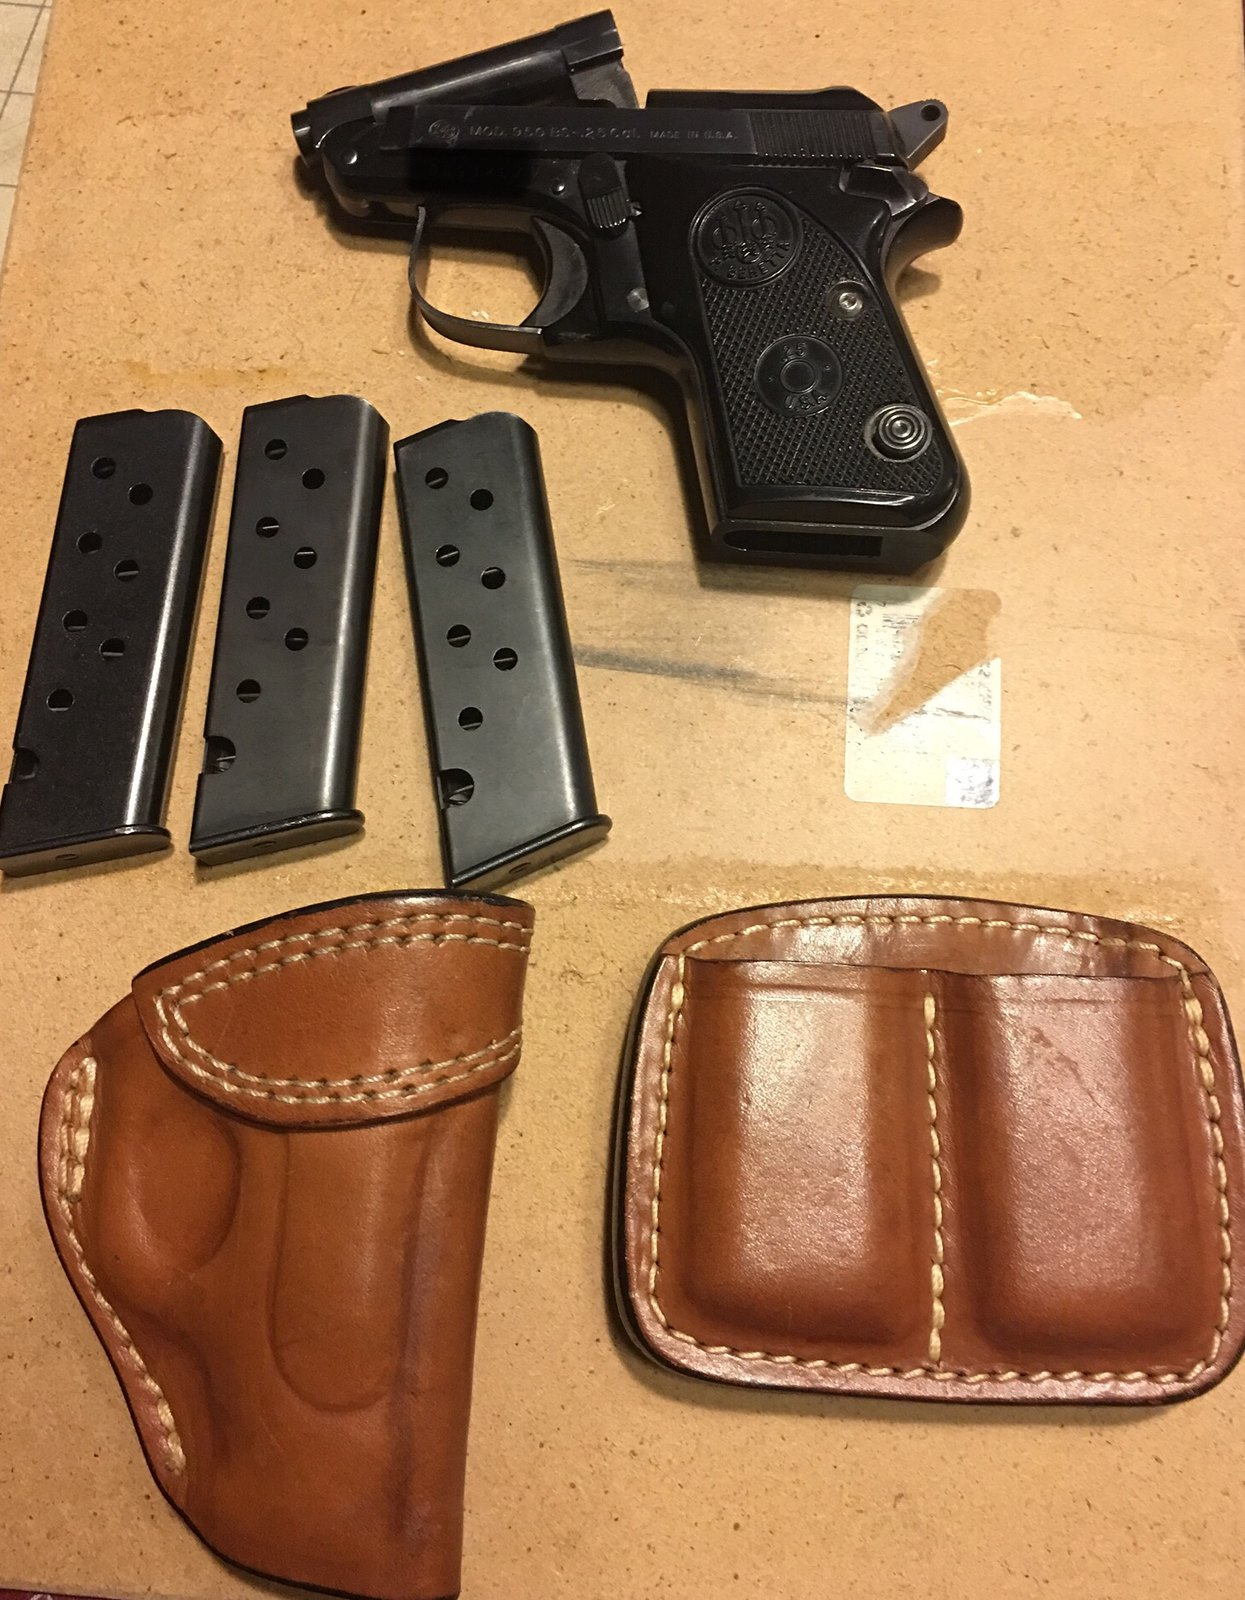 FS Beretta 950BS 25 ACP with 3 mags Holster and mag pouch